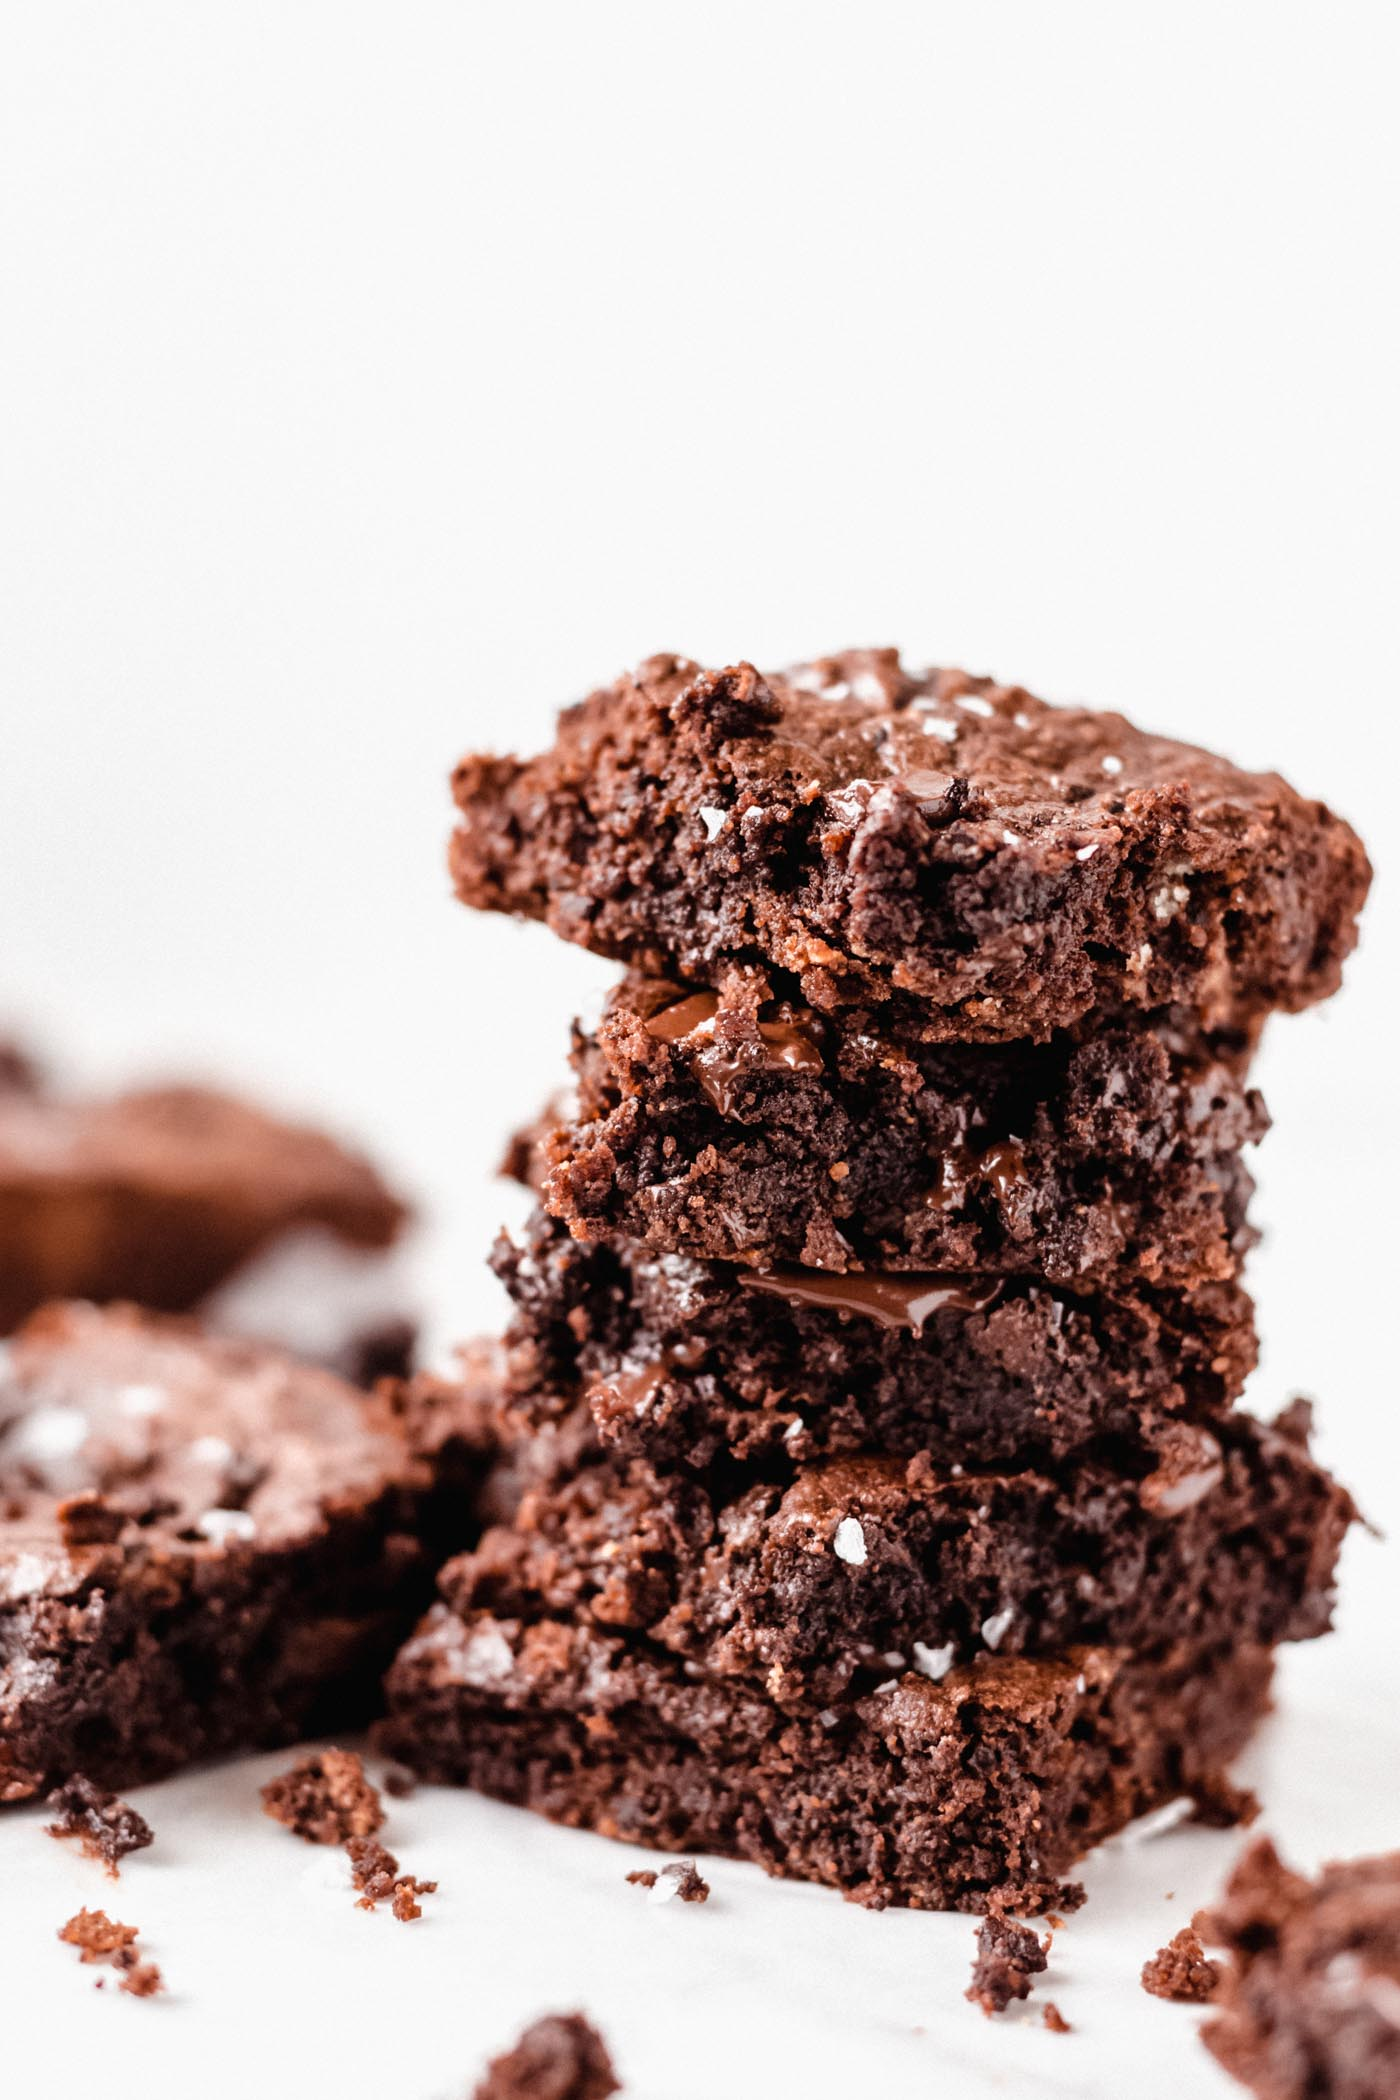 Stacked paleo brownies with scattered brownie crumbs and brownies on white background